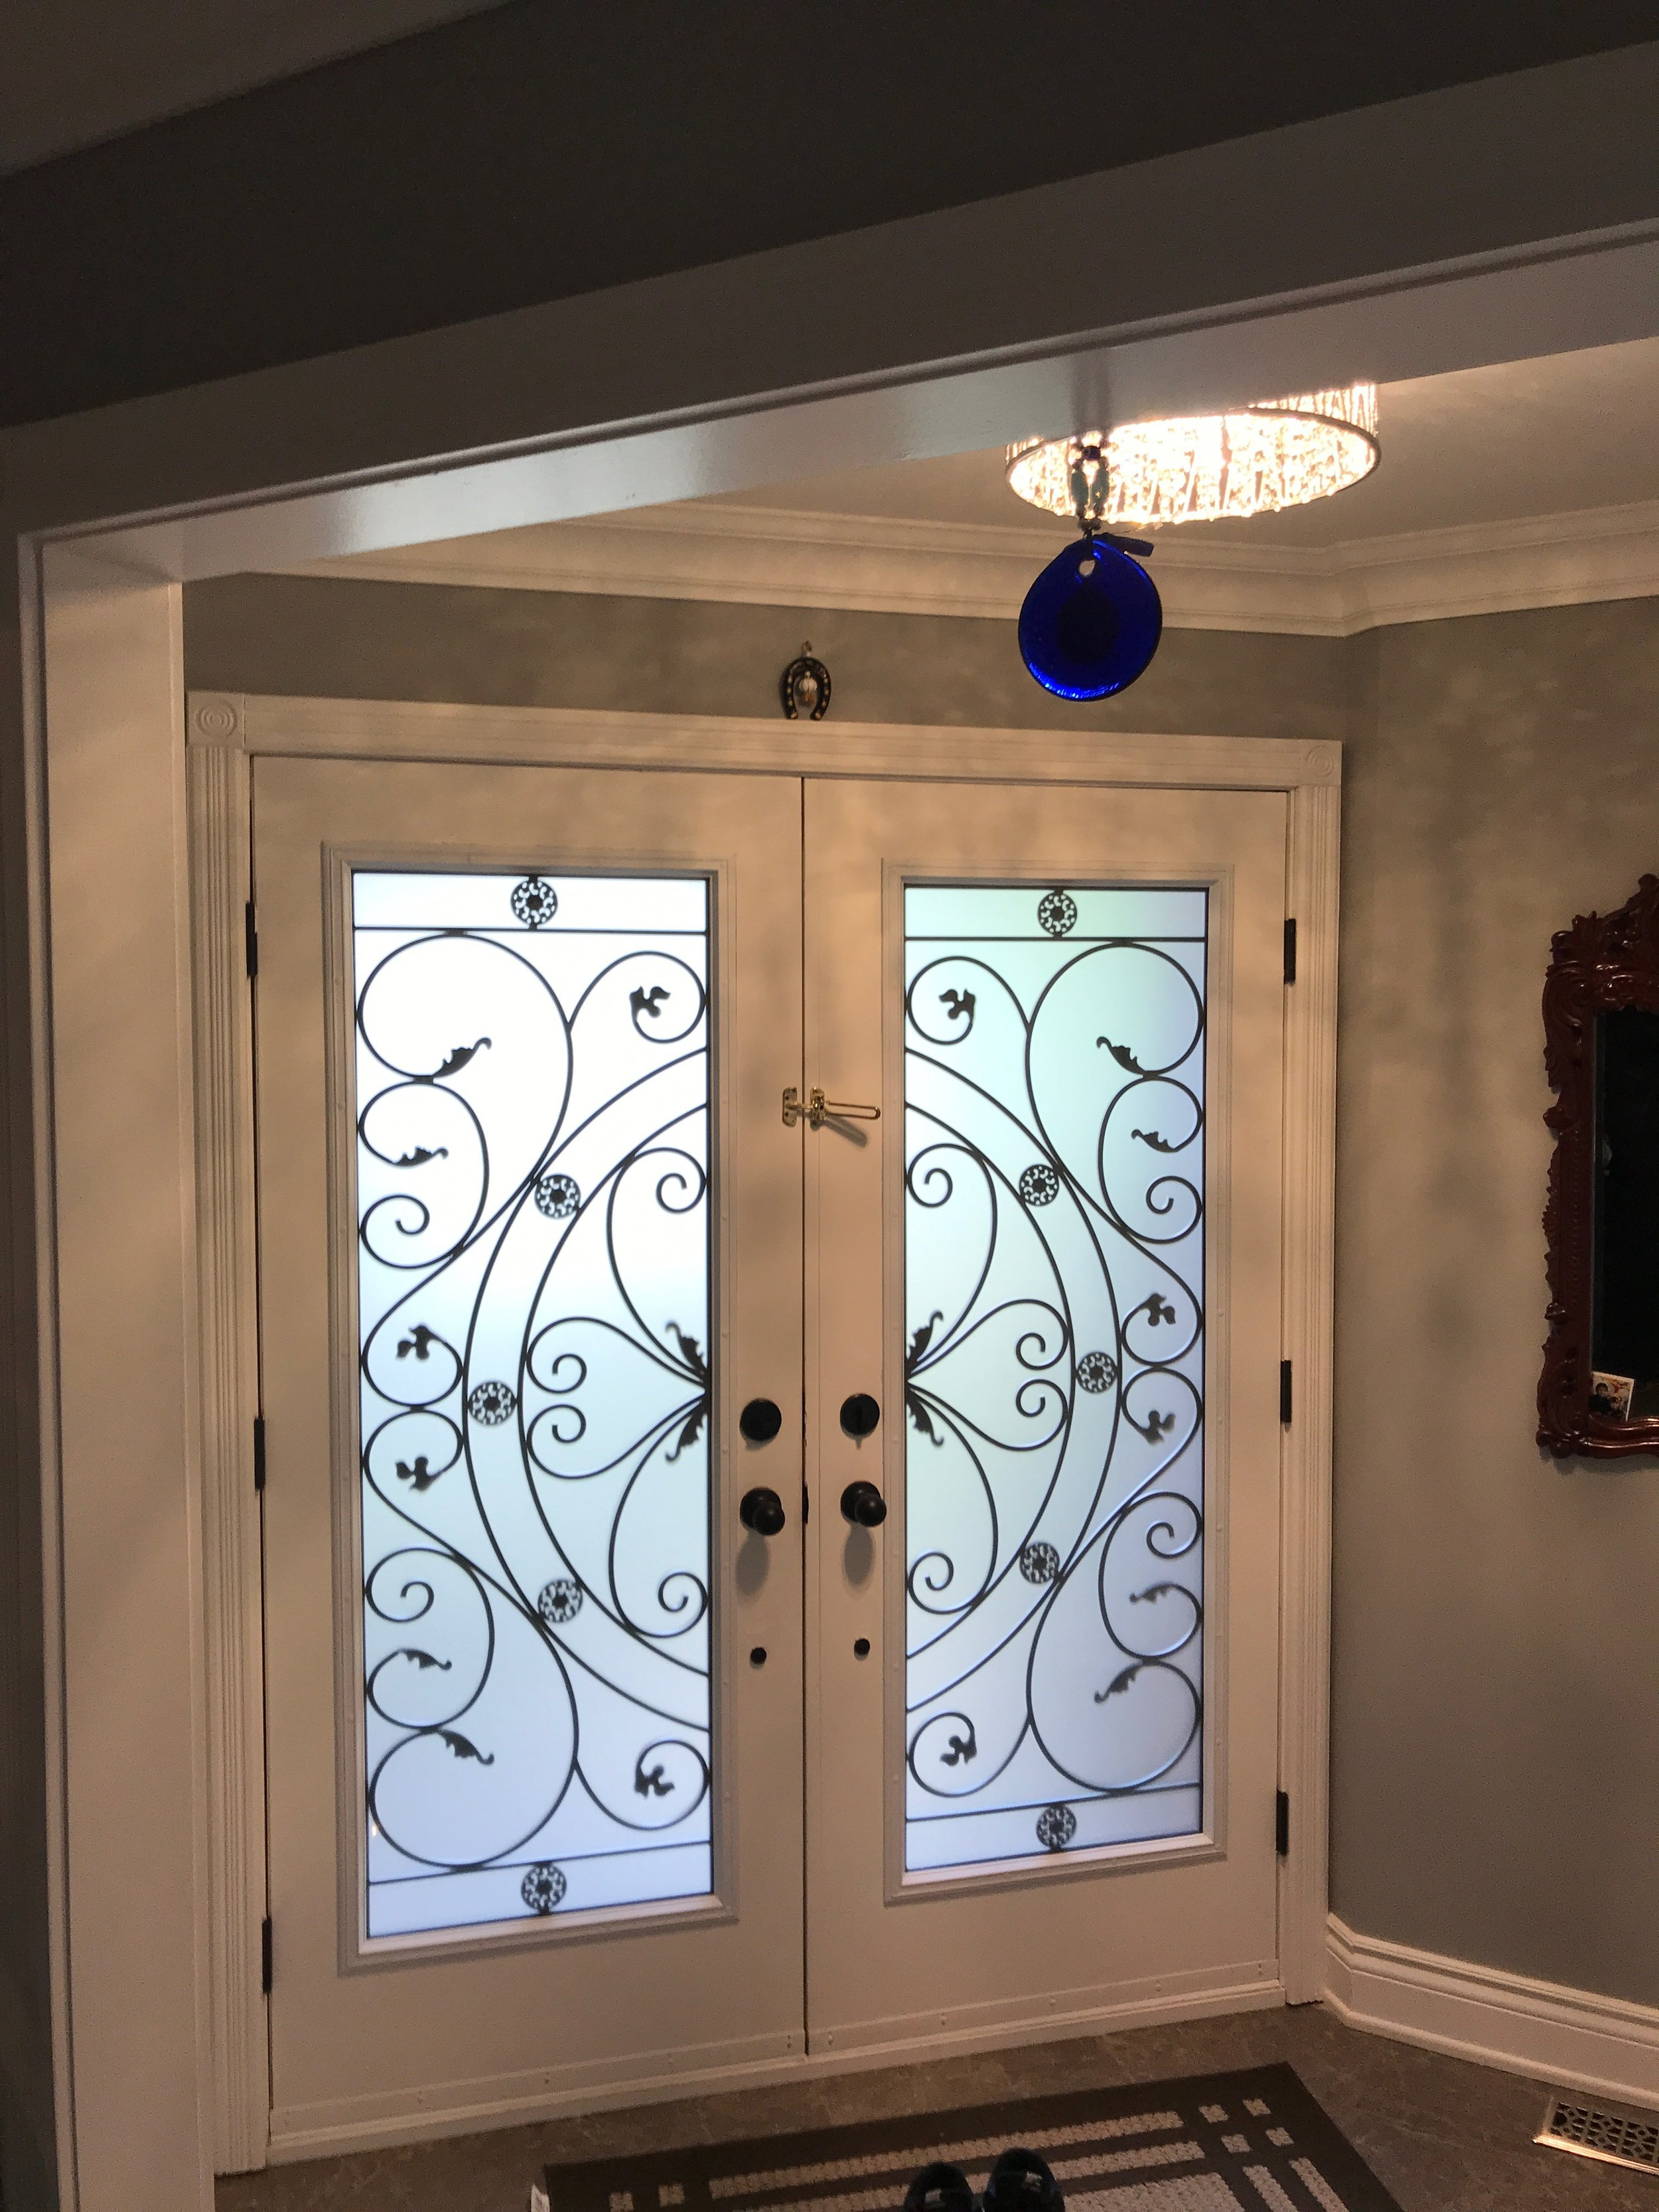 Campbellsford-Wrought-Iron-Glass-Door-Inserts-Newmarket-Ontario